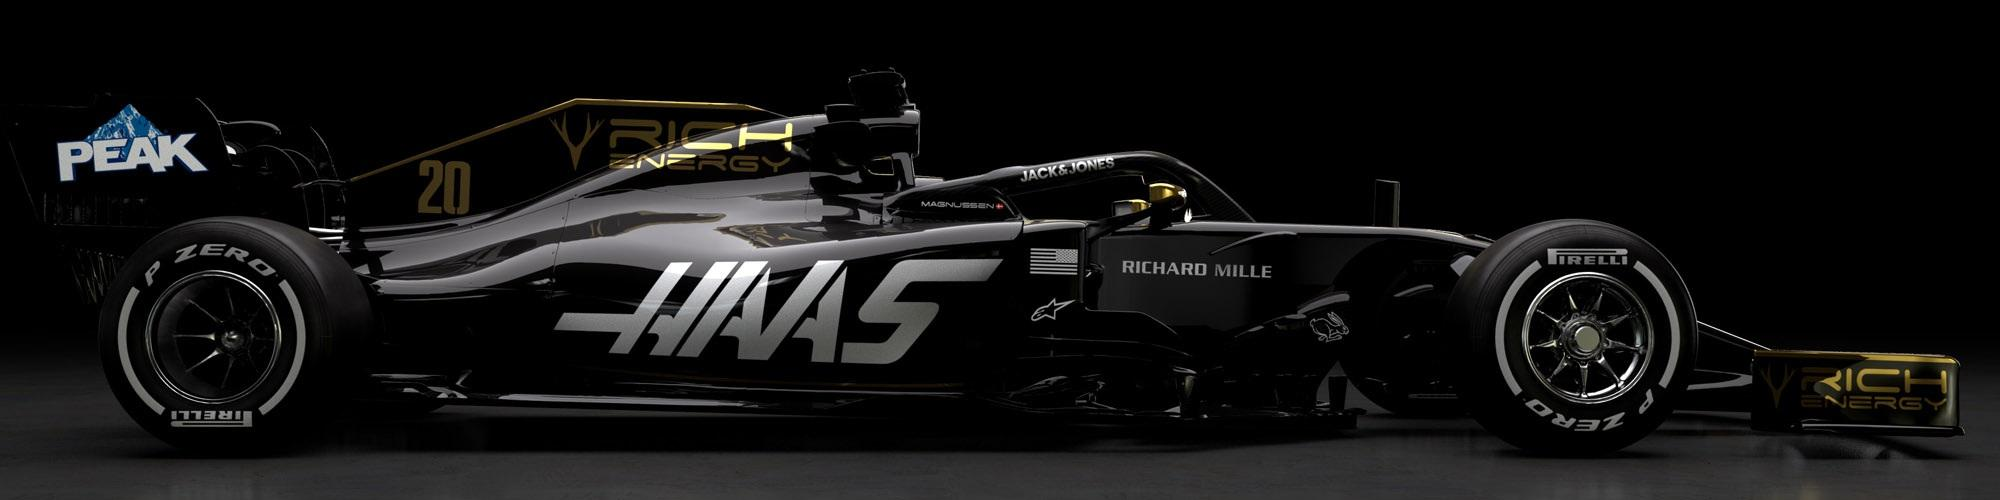 Haas F1 Team  cover image